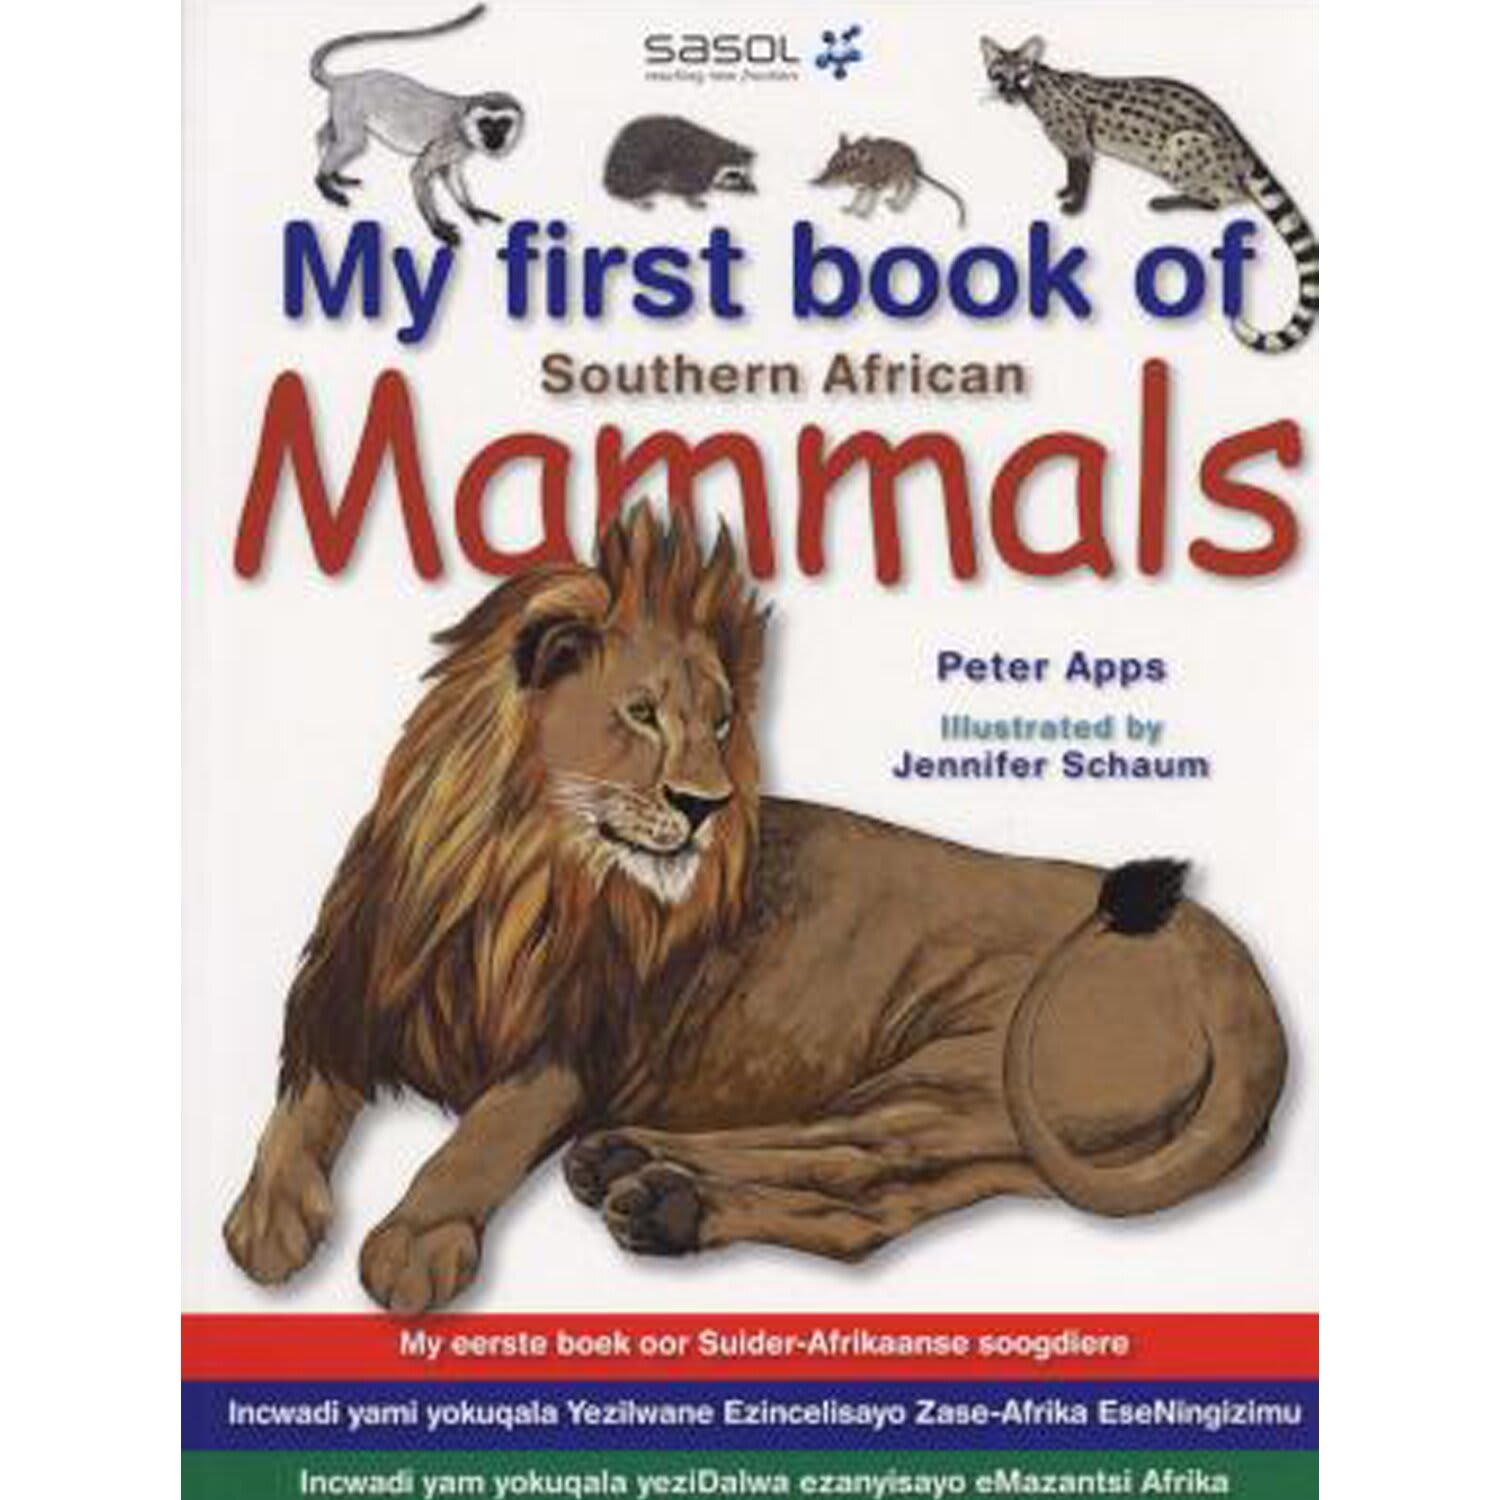 MY FIRST BOOK OF SOUTHERN AFRICAN MAMMALS